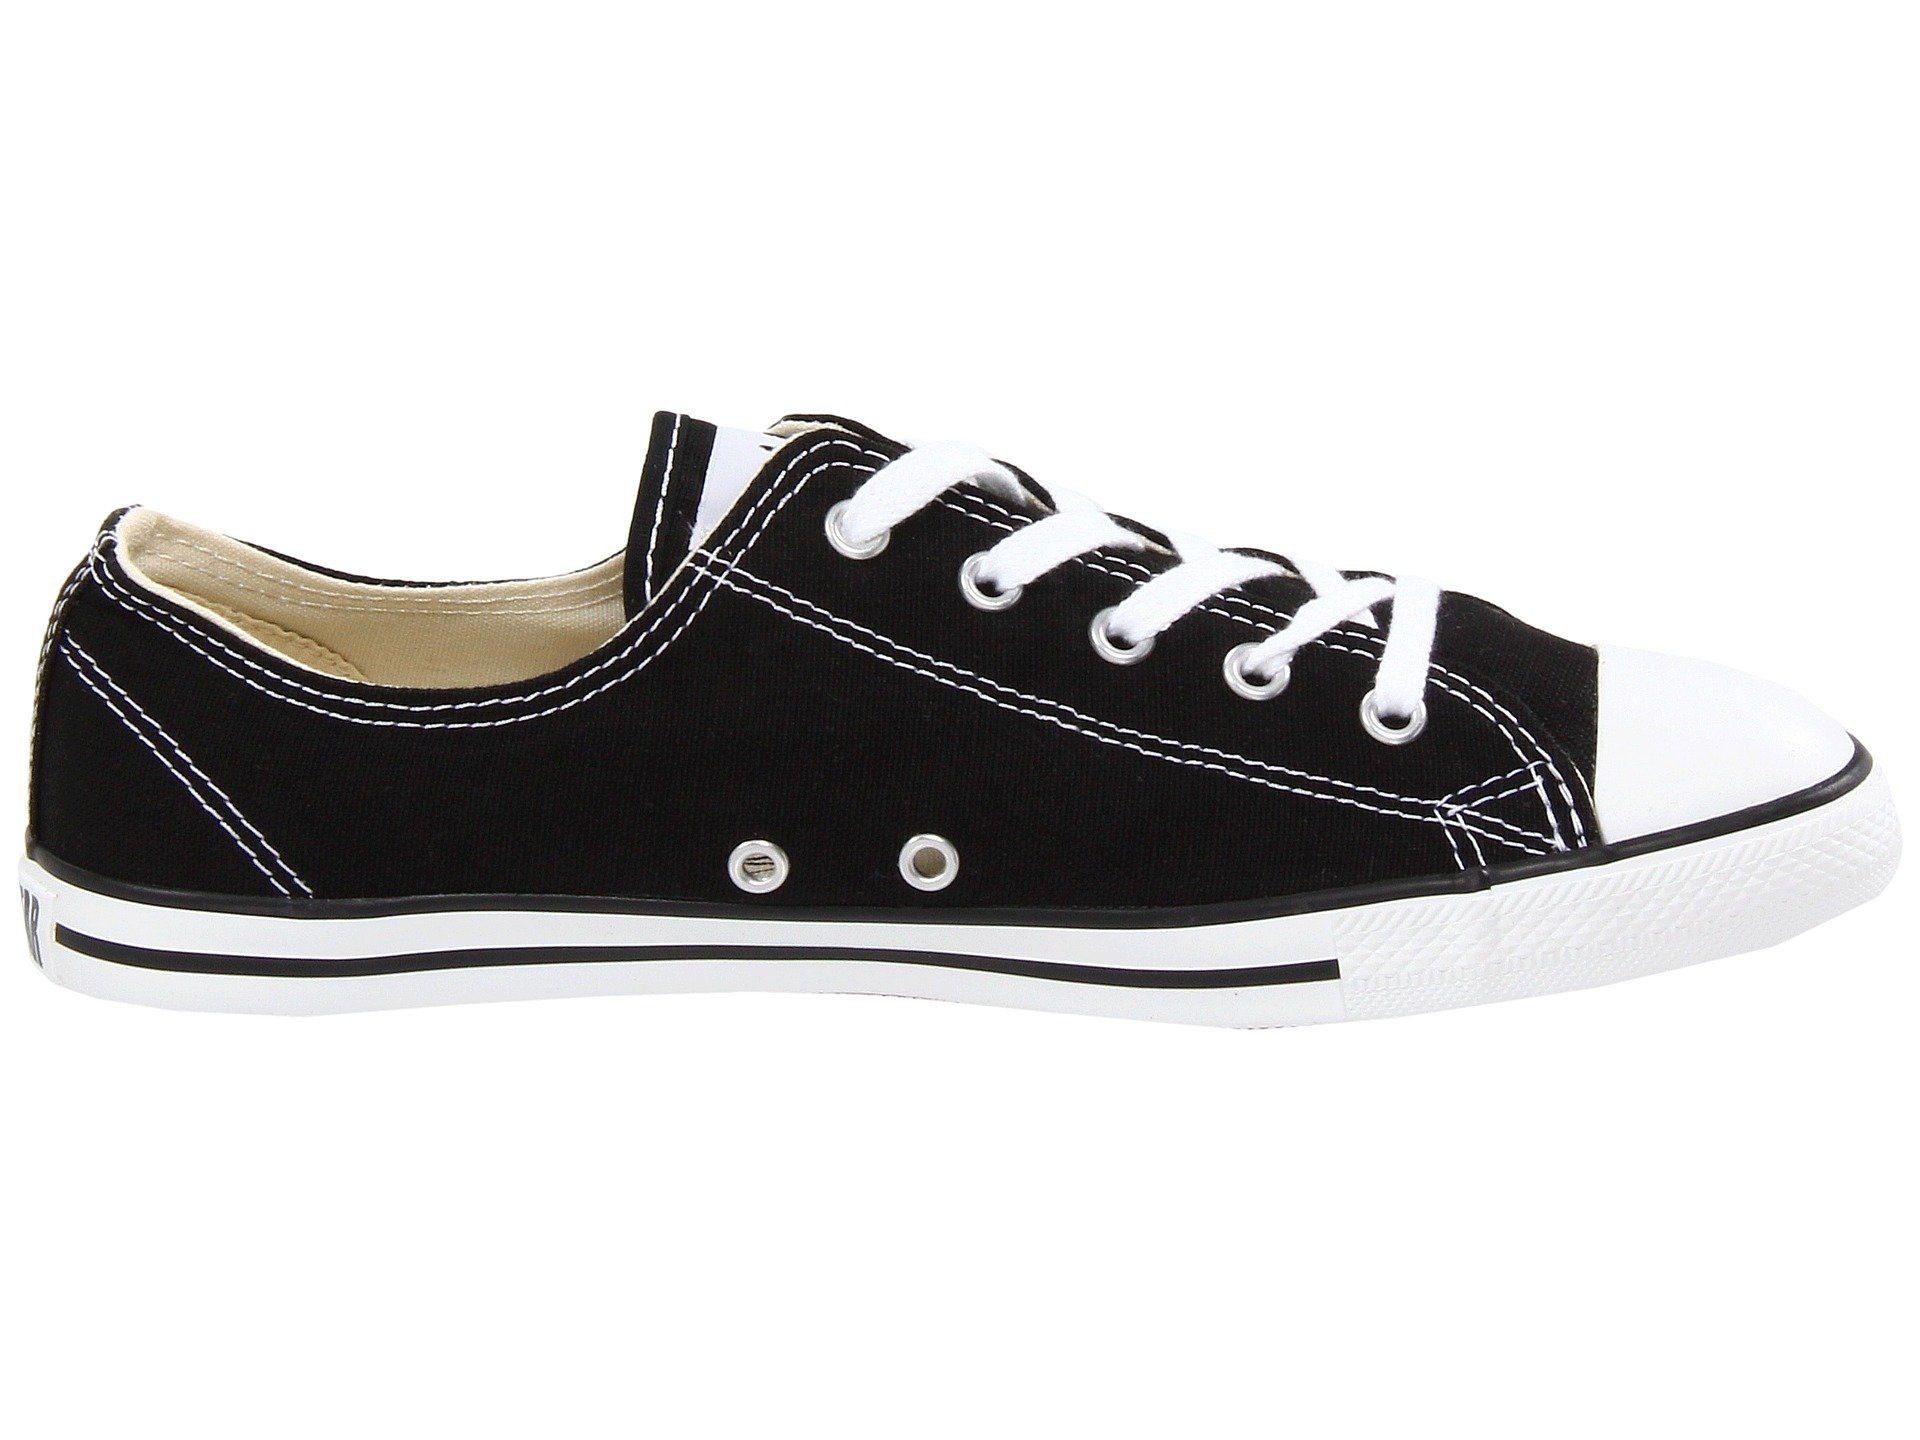 Converse chuck taylor all star dainty ox at zappos video nvjuhfo Gallery